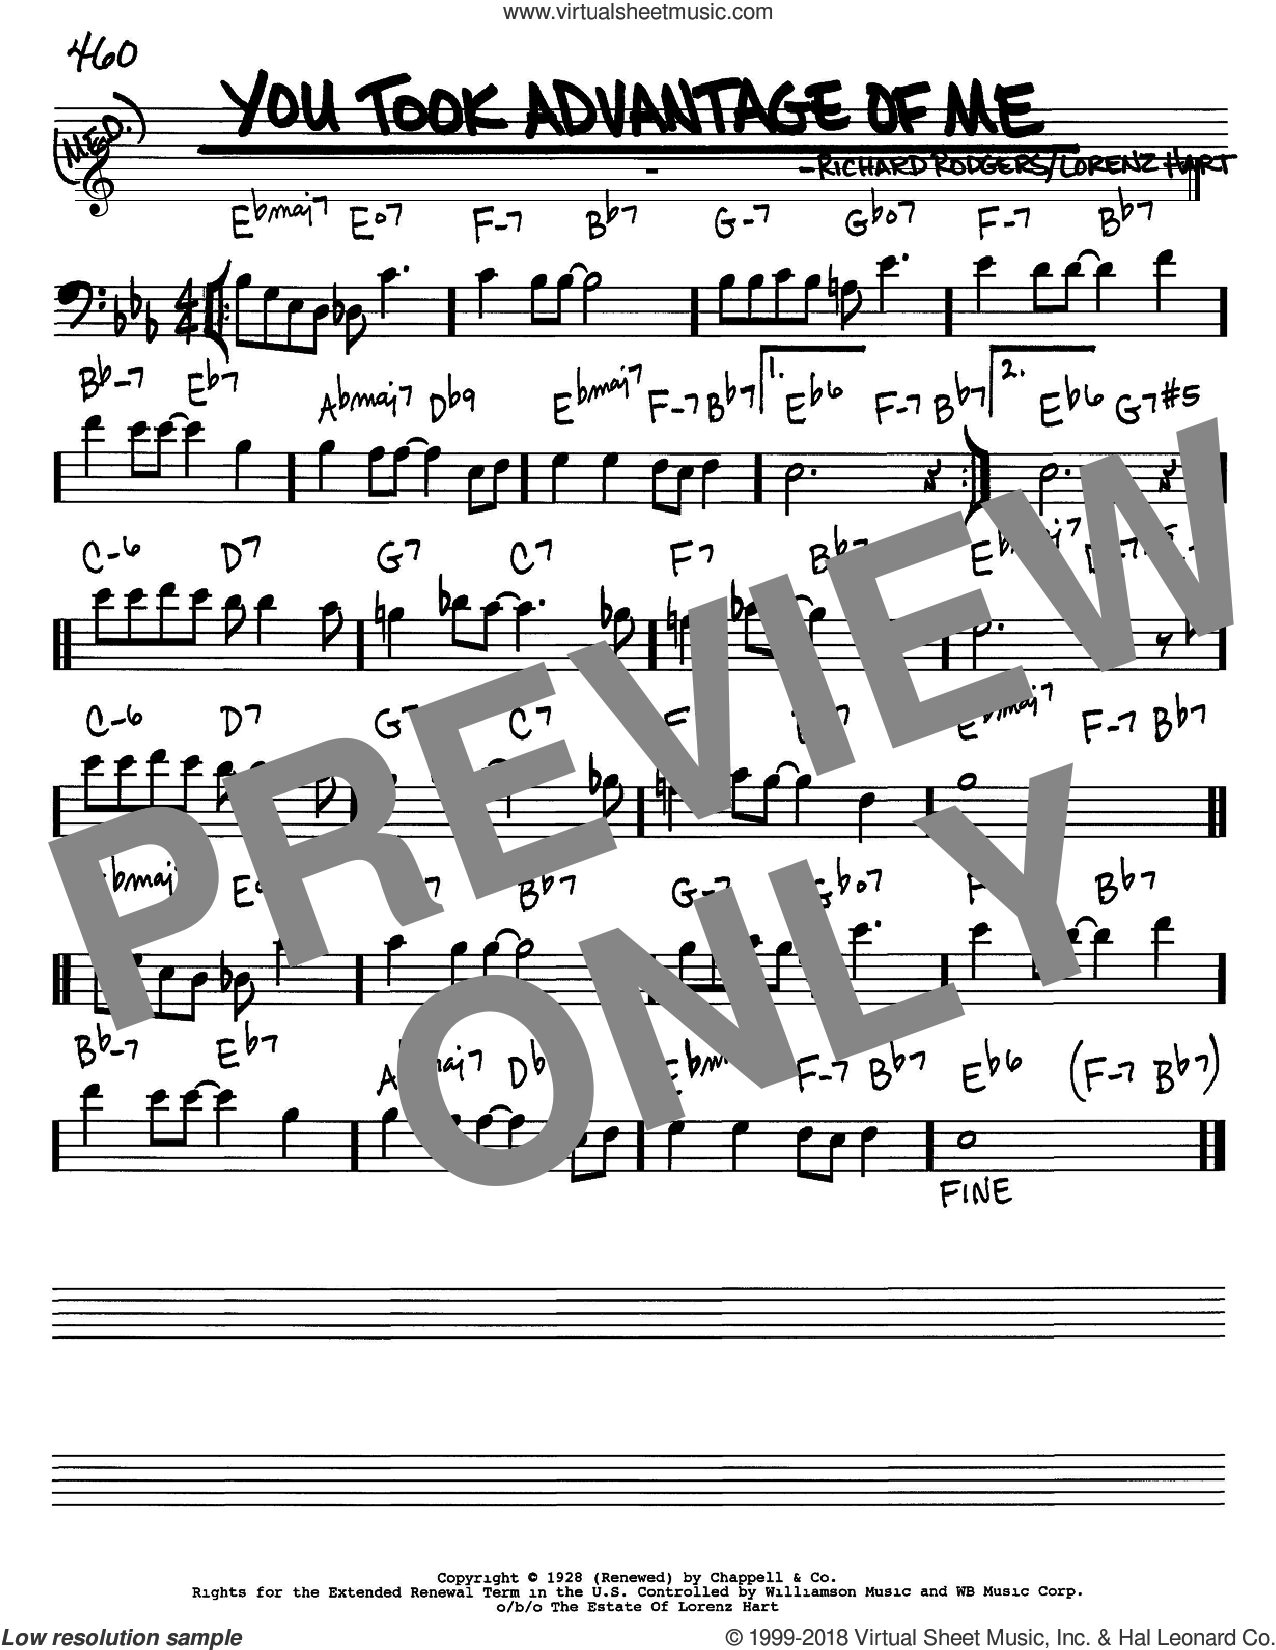 You Took Advantage Of Me sheet music for voice and other instruments (Bass Clef ) by Richard Rodgers, Rodgers & Hart and Lorenz Hart. Score Image Preview.